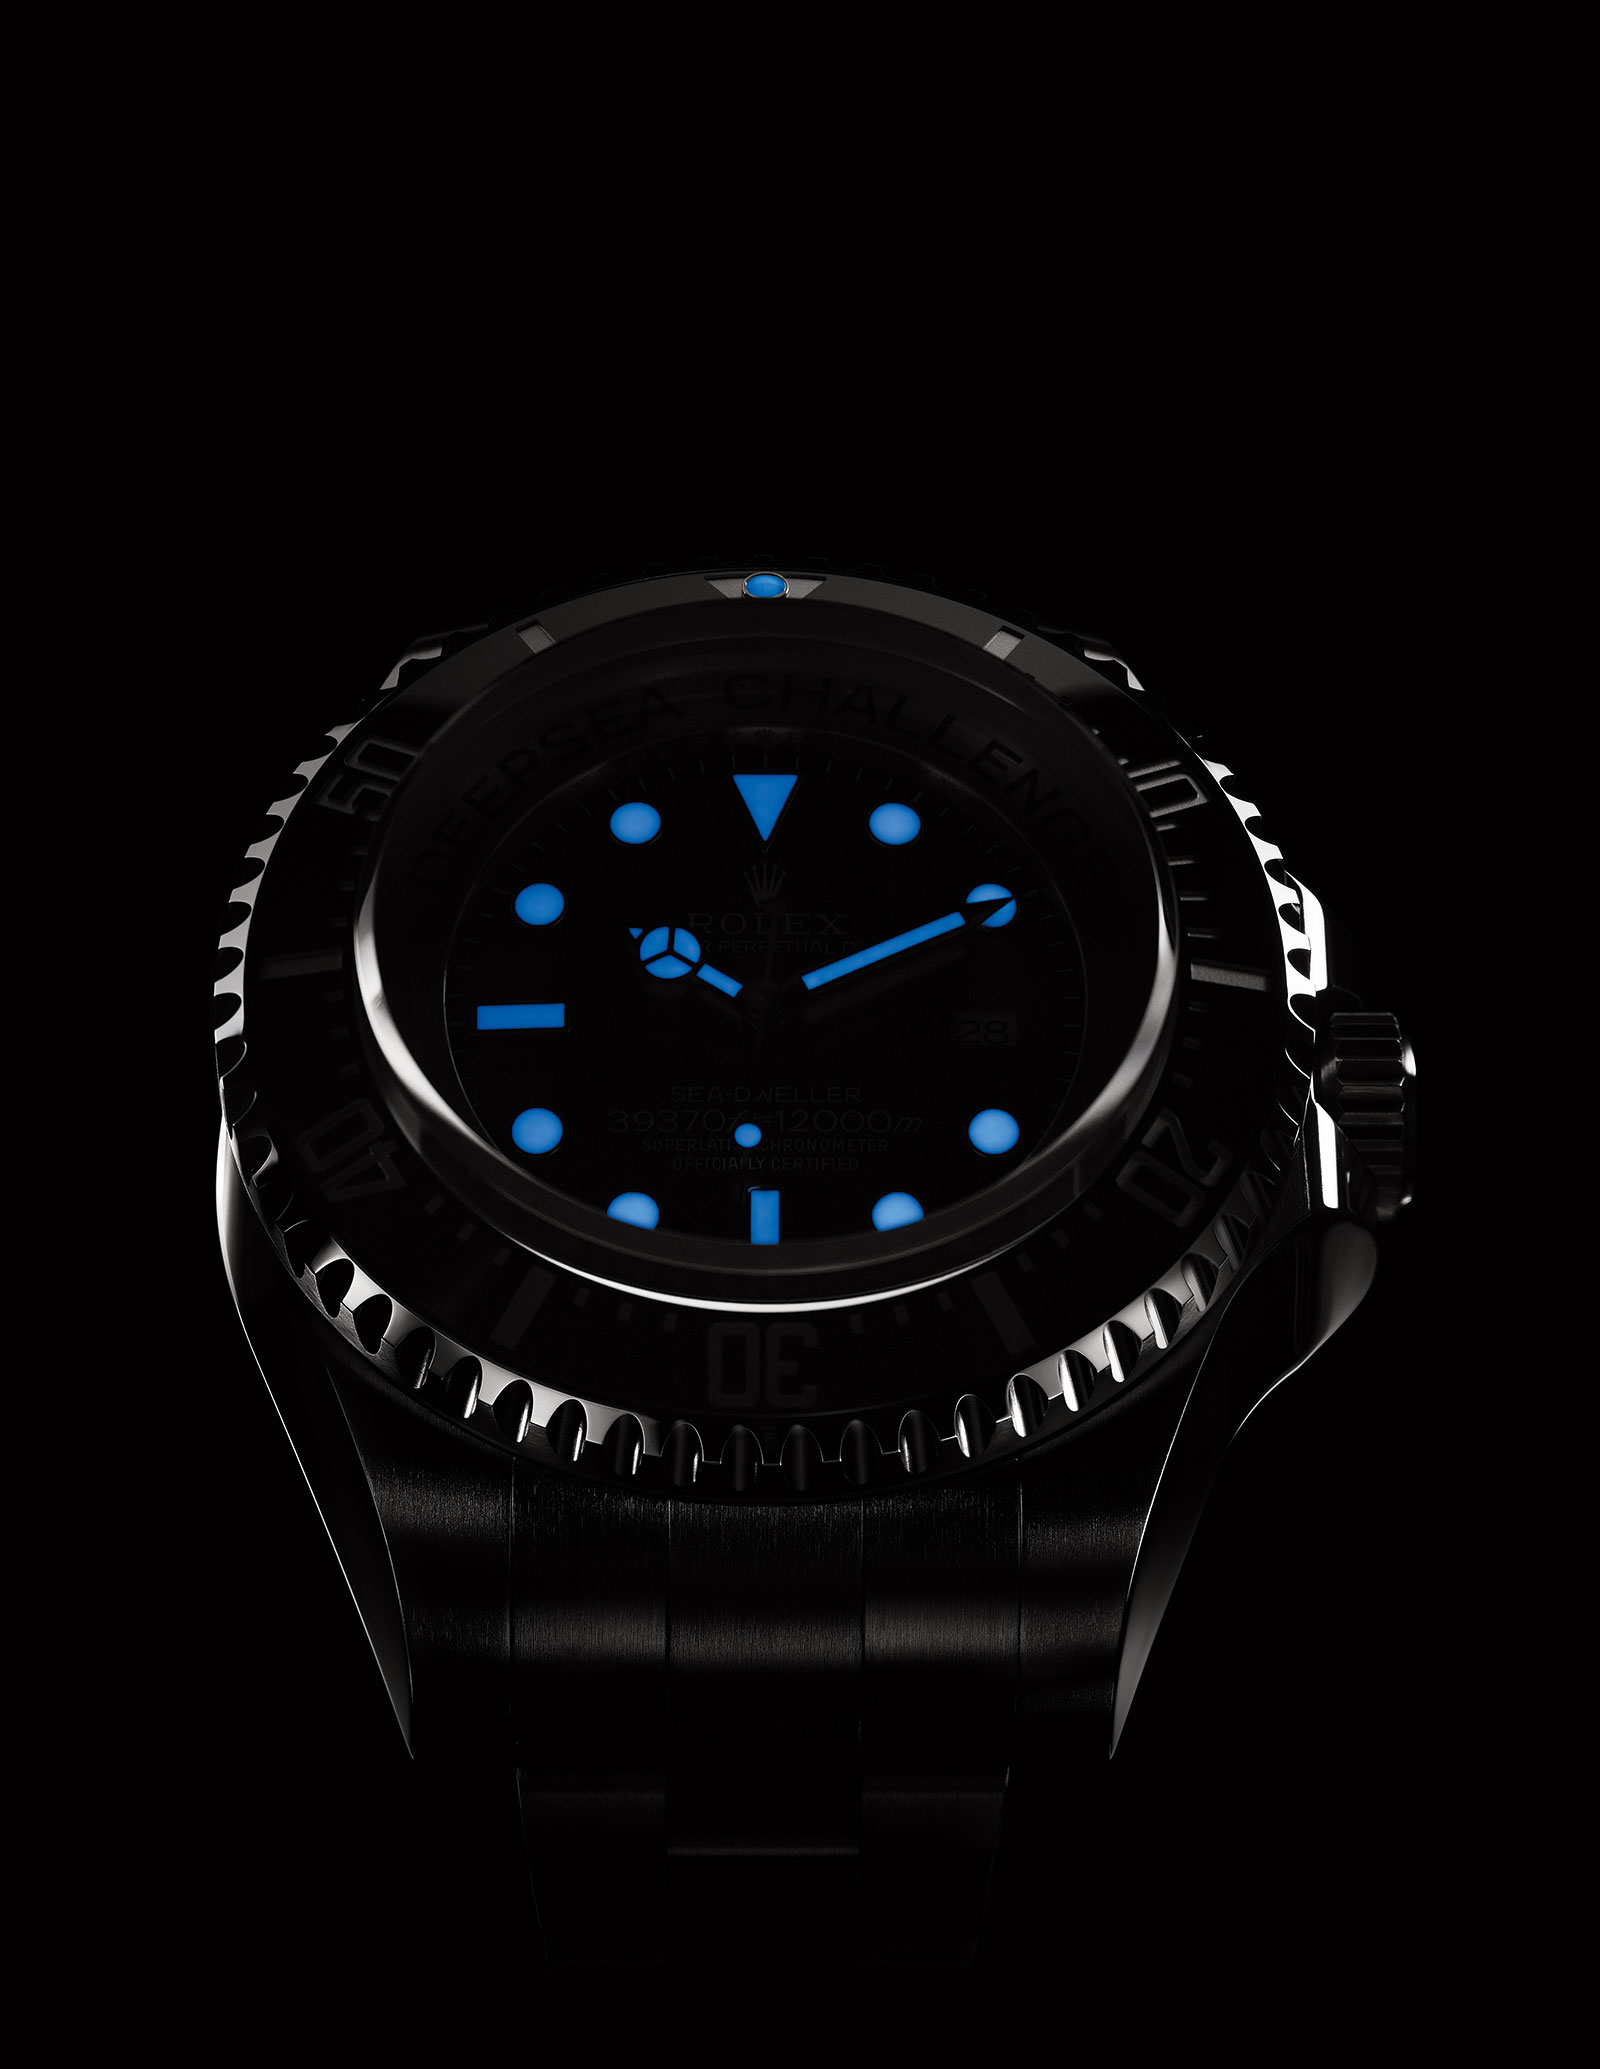 Introducing The Rolex Deepsea Challenge The Watch That Will Reach